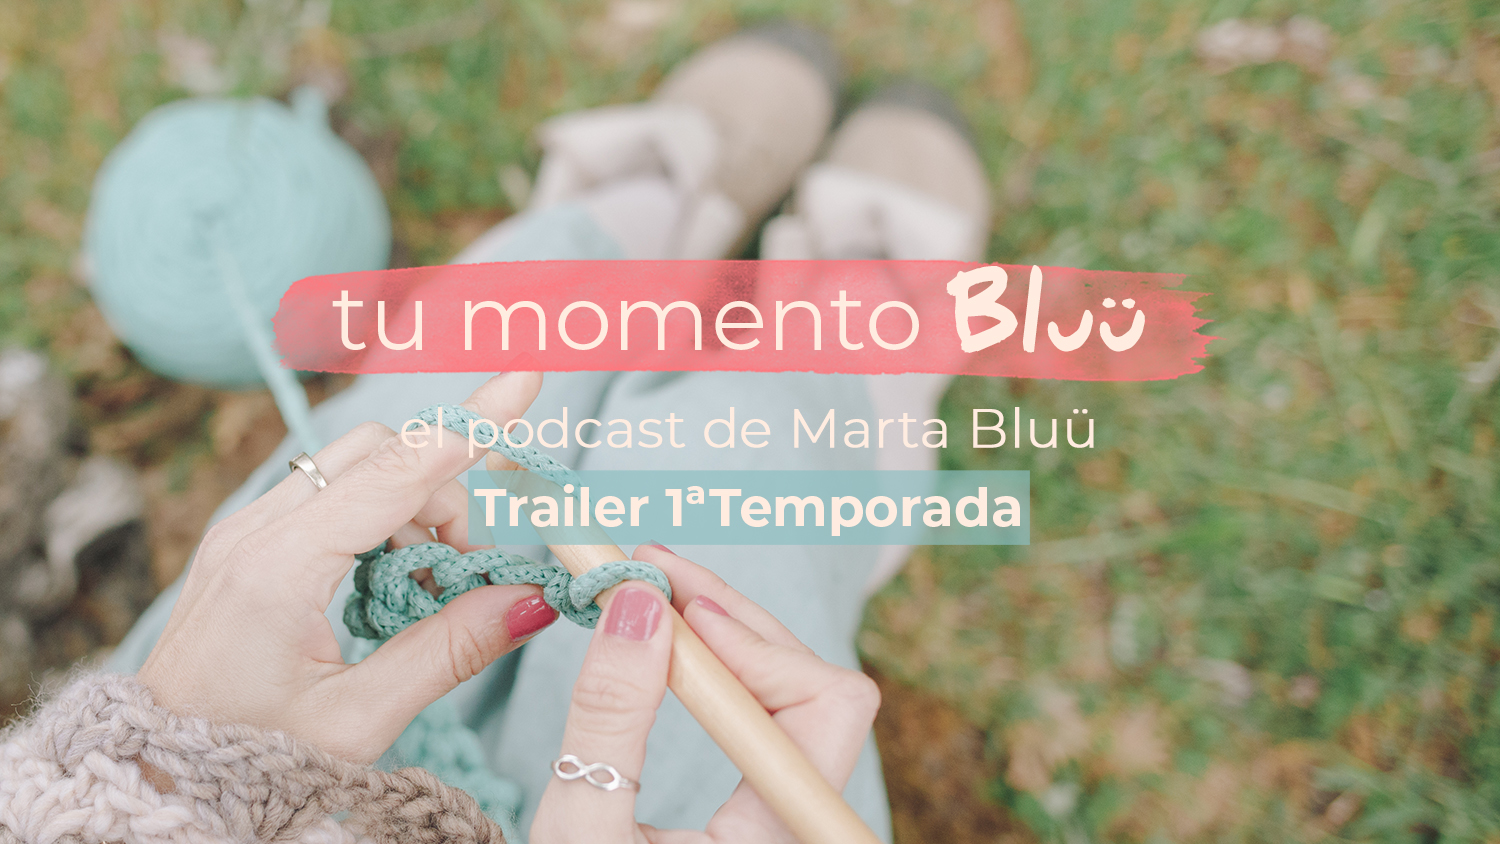 PODCAST | TRAILER 1ª TEMPORADA